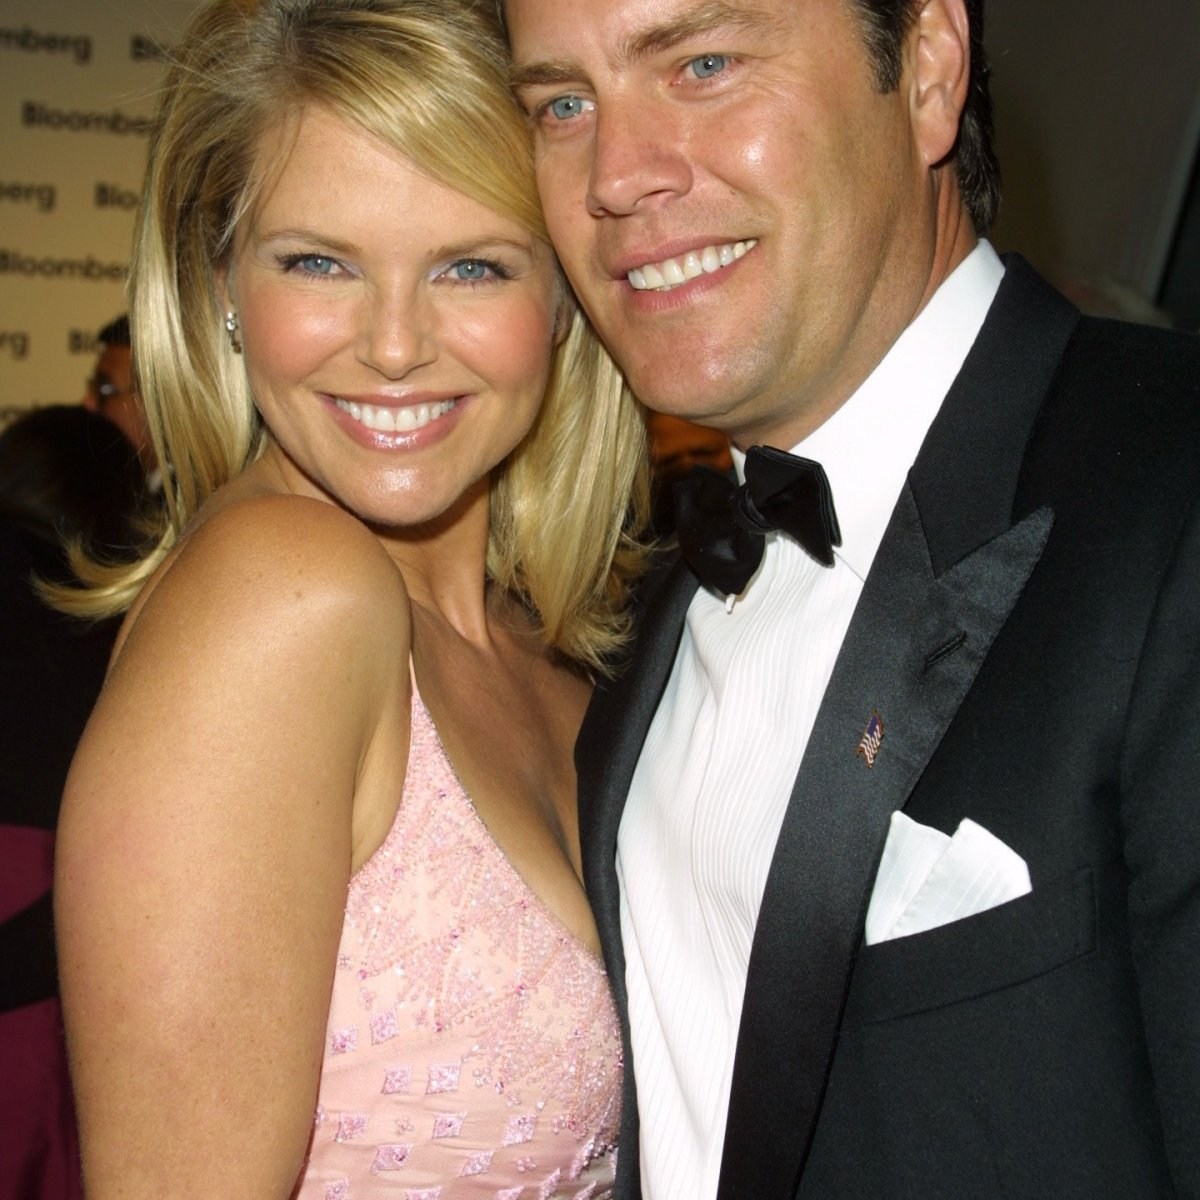 Christie Brinkley Has Tied the Knot 4 Times! Get to Know the Supermodel's Husbands